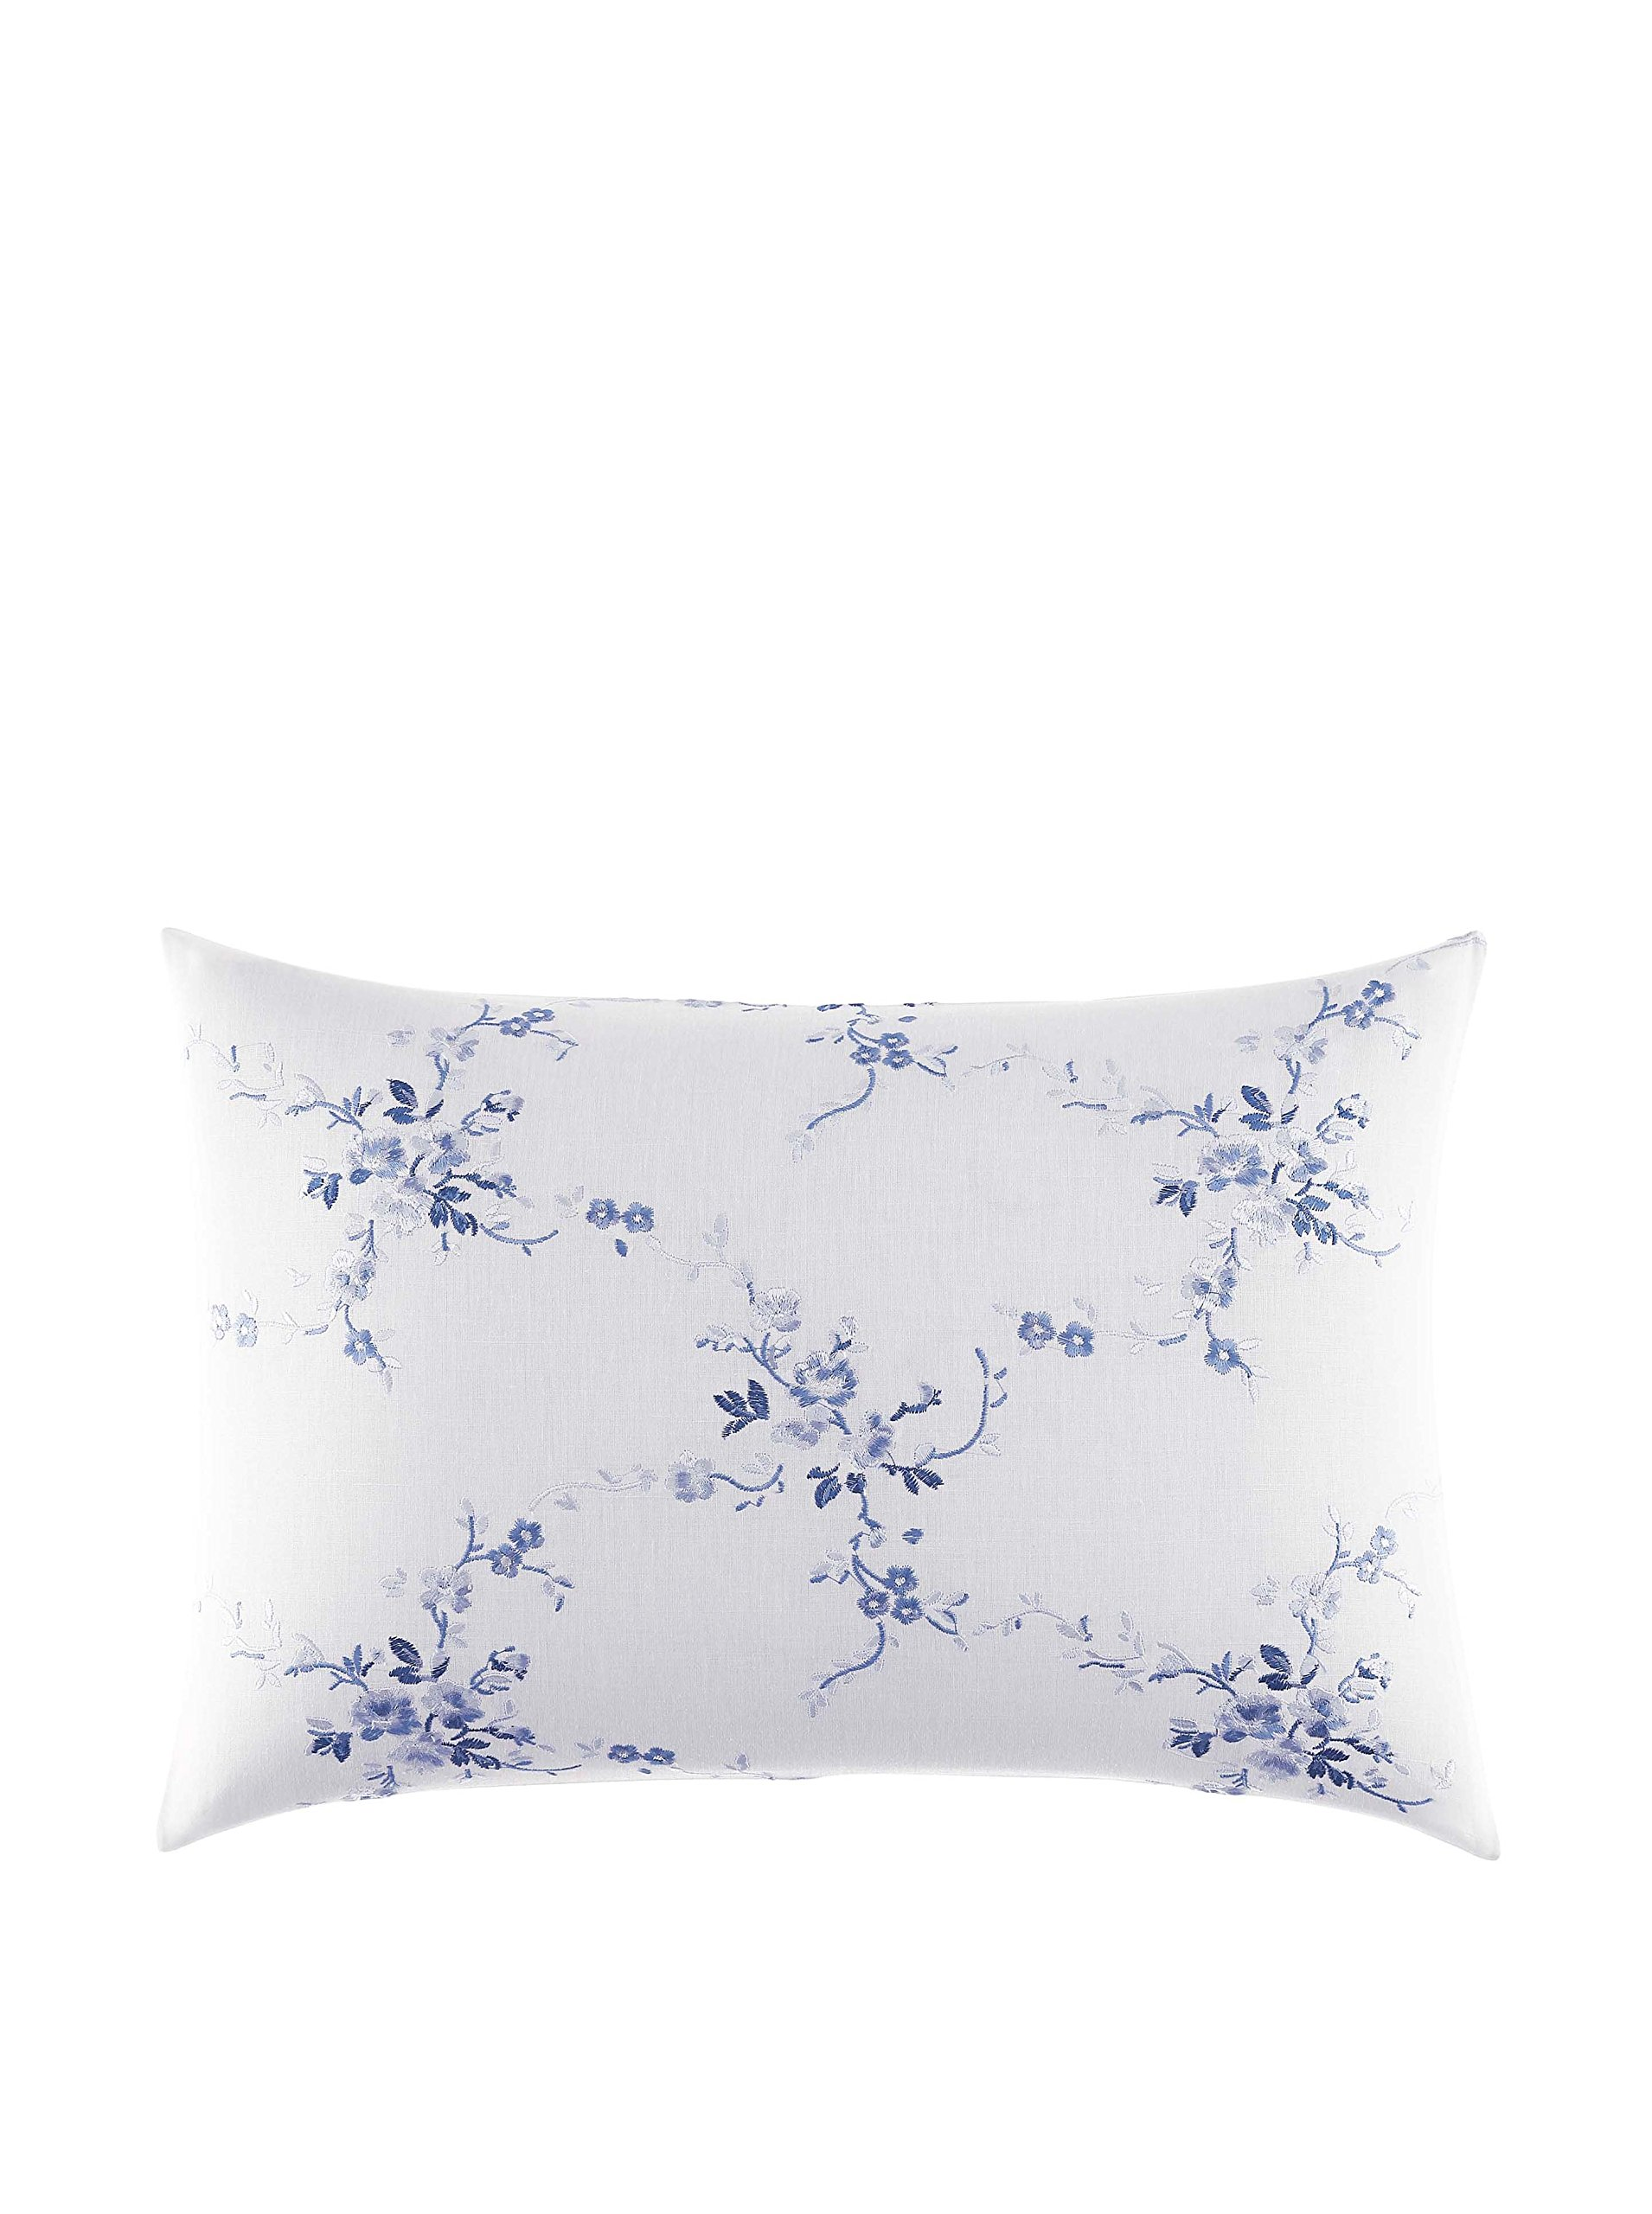 Laura Ashley Home | Charlotte Collection | Perfect Decorative Throw Pillow, Premium Designer Quality, Decorative Pillow for Bedroom Living Room and Home Décor, 20x20, China Blue - Dec pillow is 14x20 Pillow features embroidery details Pillow includes removable polyester insert - living-room-soft-furnishings, living-room, decorative-pillows - 81uNnnL7uVL -